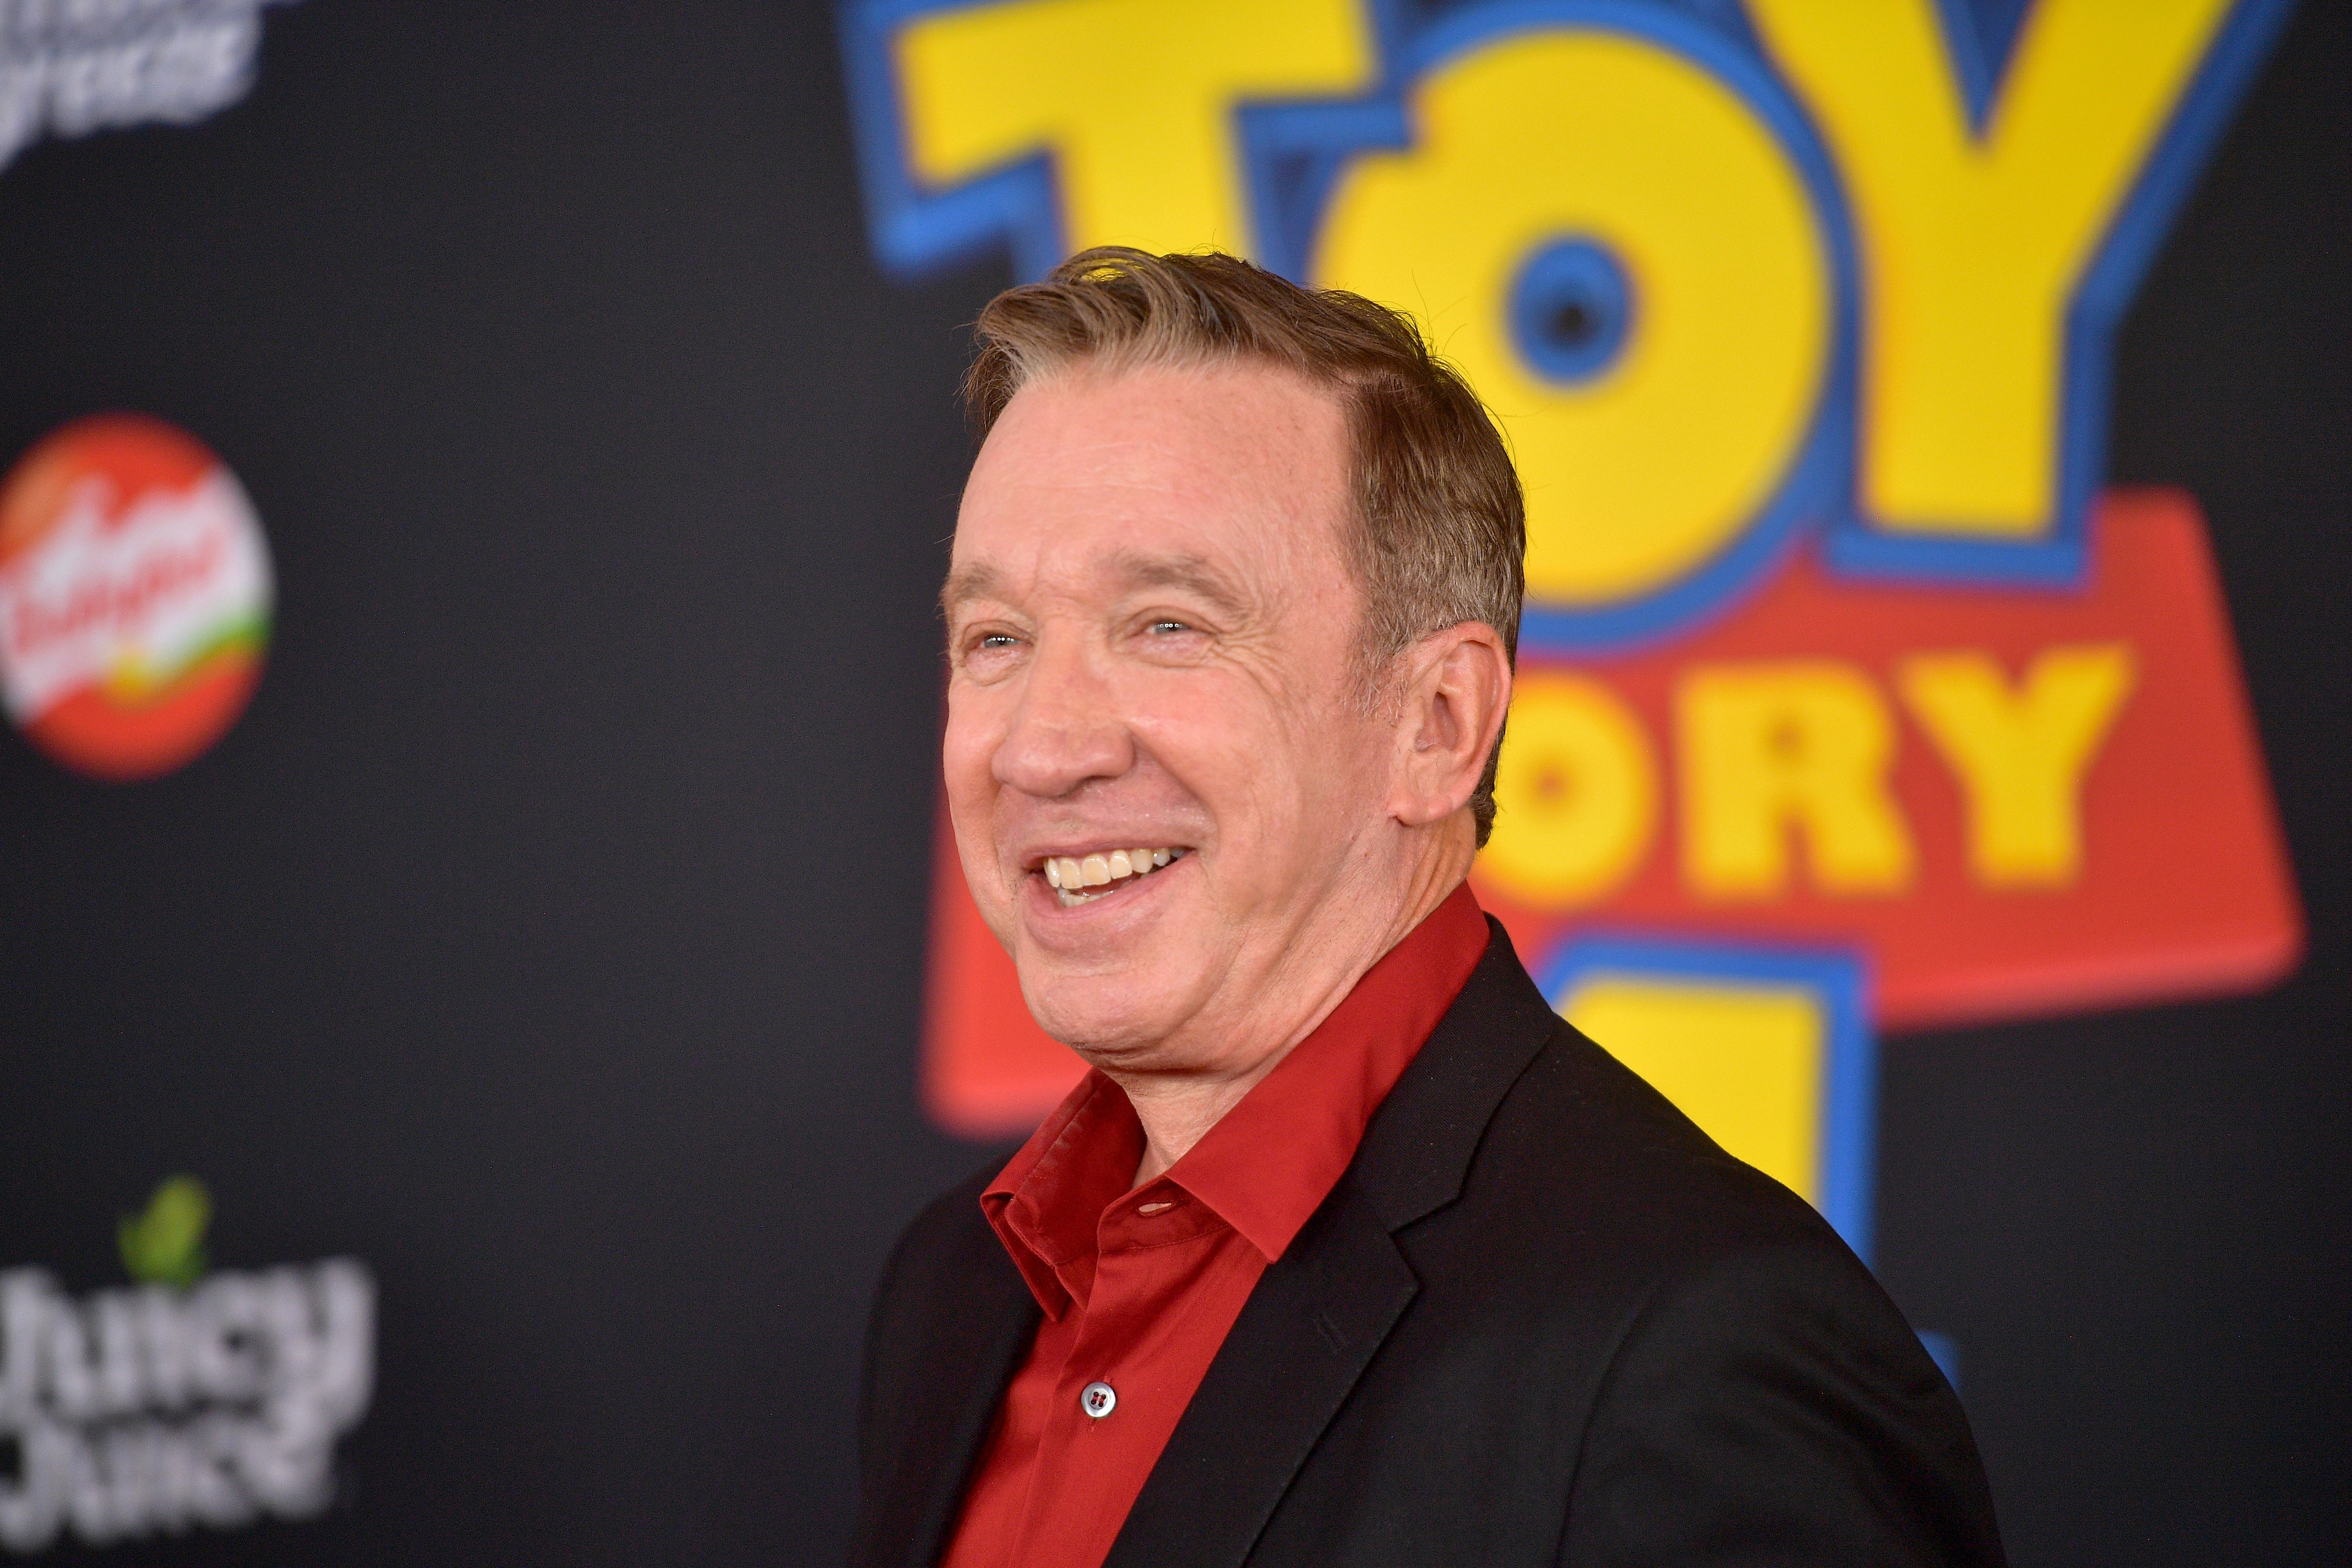 """Tim Allen at the premiere of Disney and Pixar's """"Toy Story 4"""" on June 11, 2019 